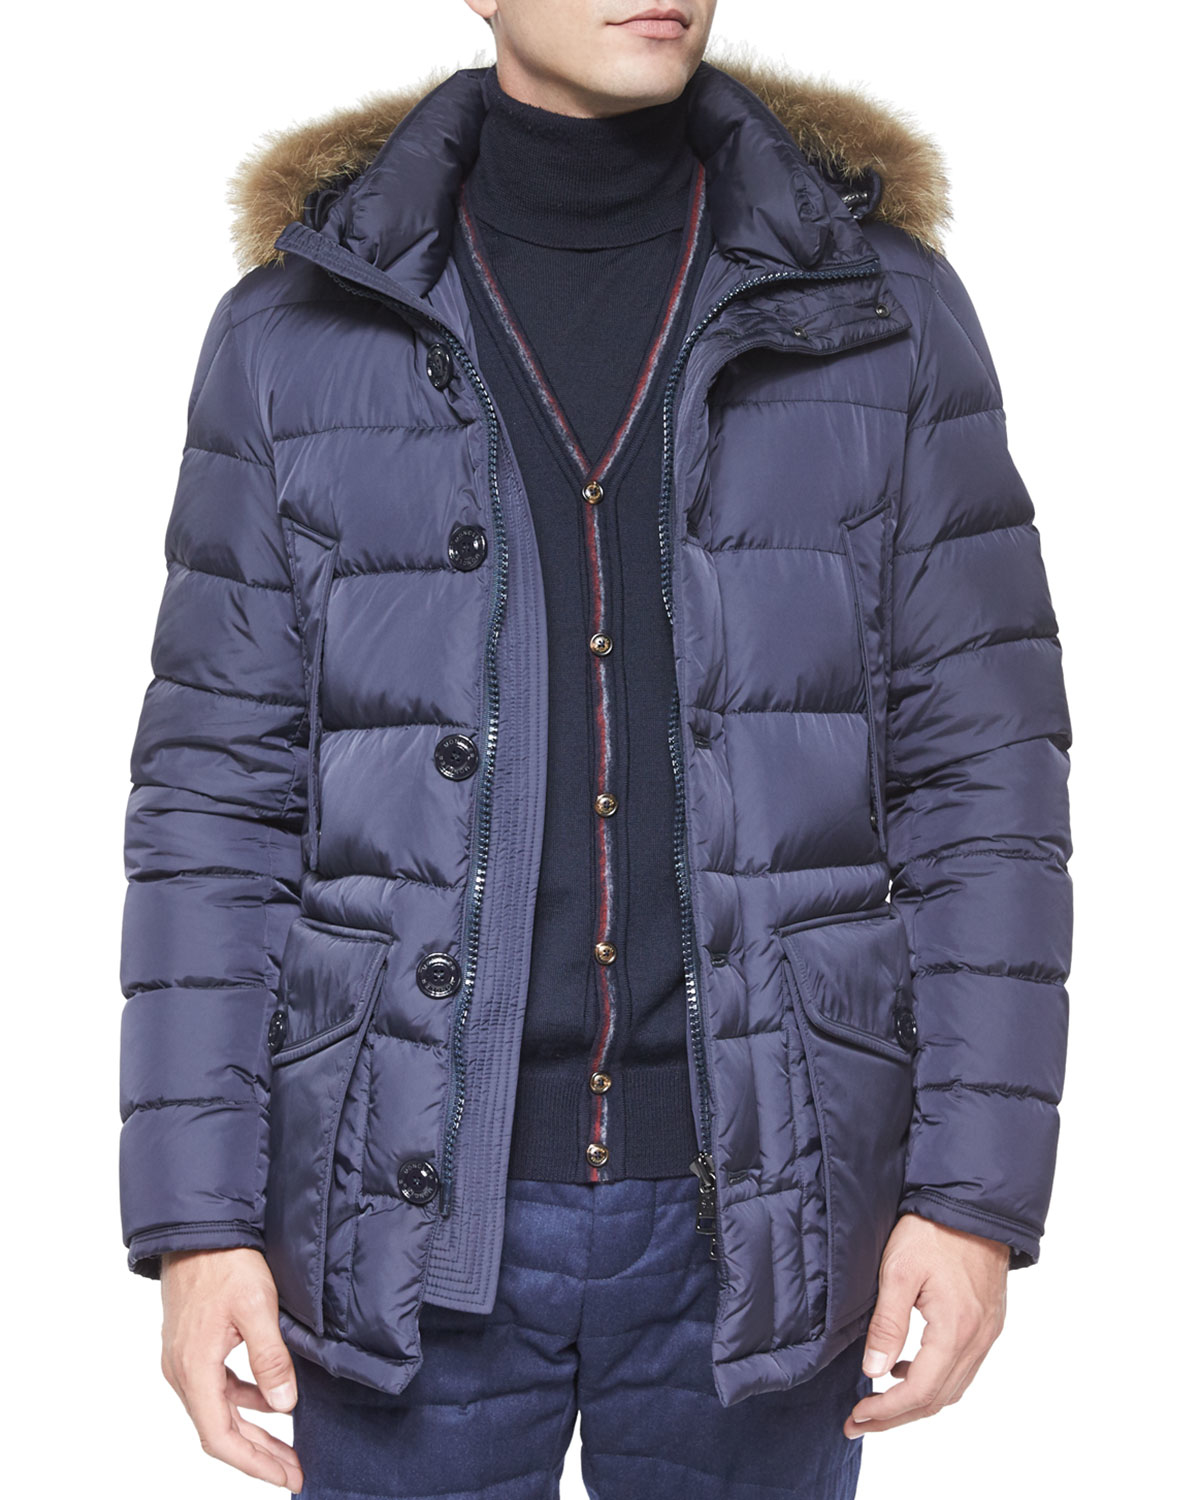 moncler cluny nylon puffer jacket with fur hood in blue for men lyst. Black Bedroom Furniture Sets. Home Design Ideas